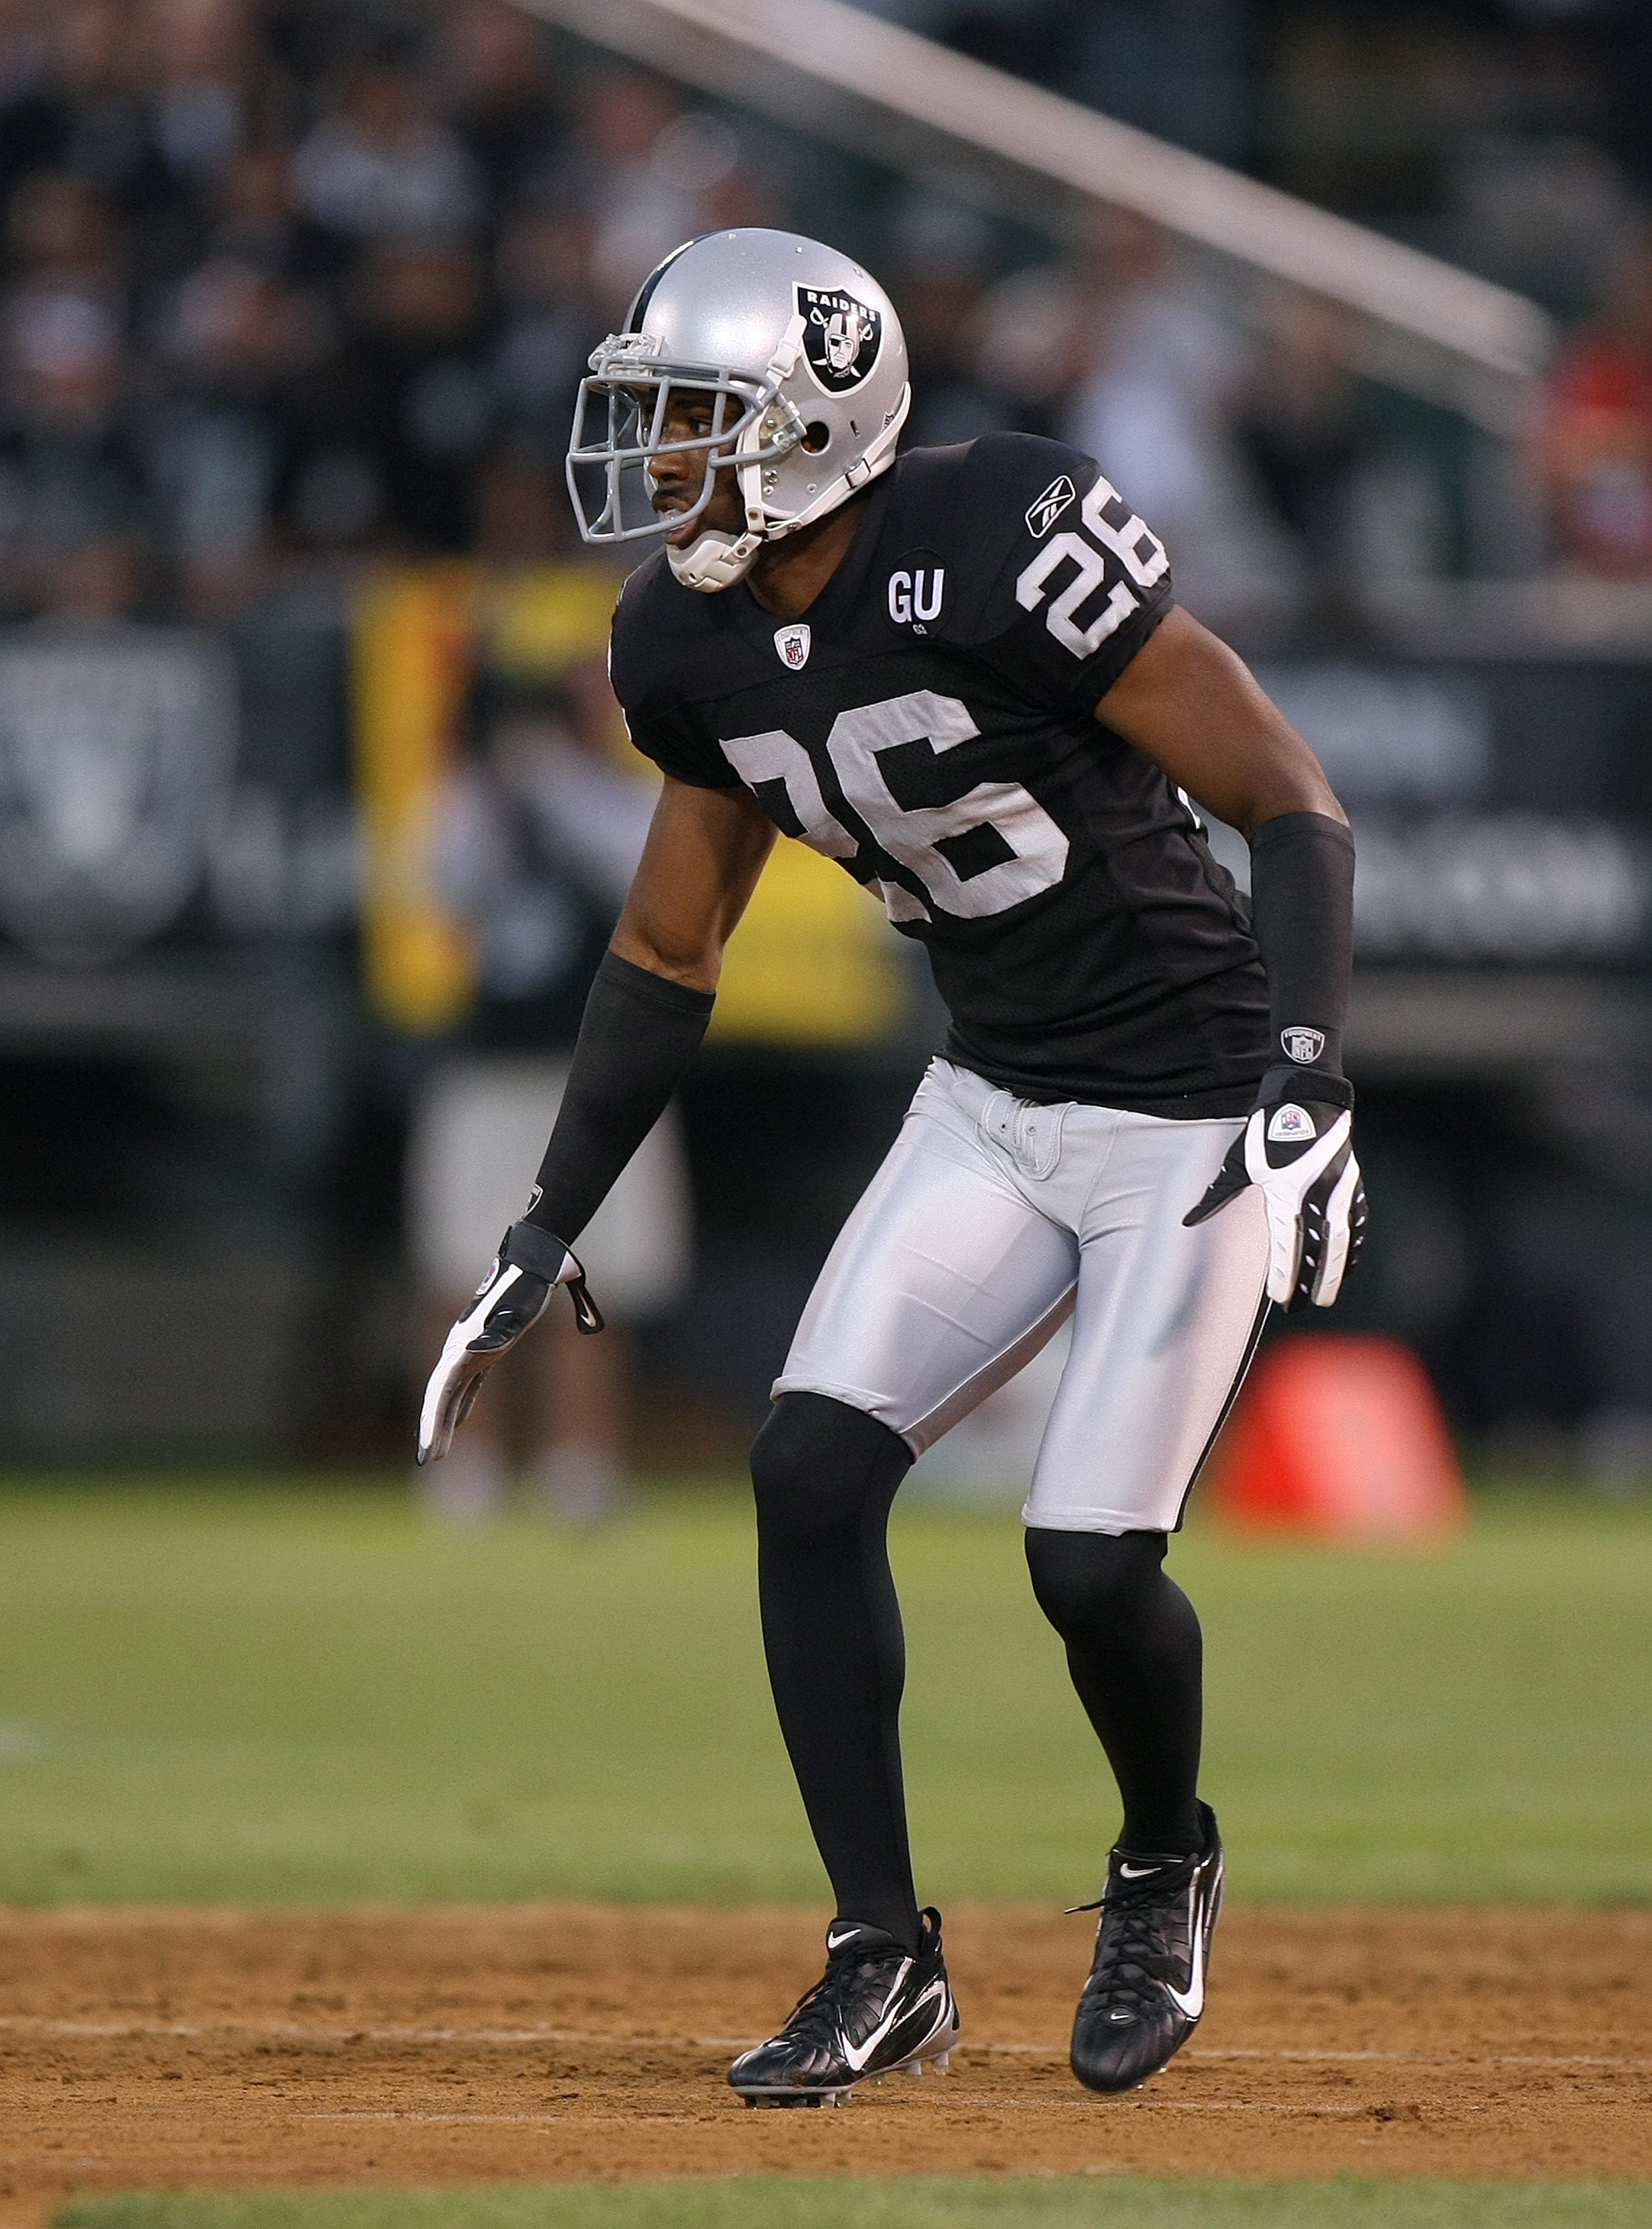 OAKLAND, CA - SEPTEMBER 8:  Stanford Routt #26 of the Oakland Raiders lines up in position during the NFL game against the Denver Broncos on September 8, 2008 at McAfee Coliseum in Oakland, California. The Broncos defeated the Raiders 41-14. (Photo by Jed